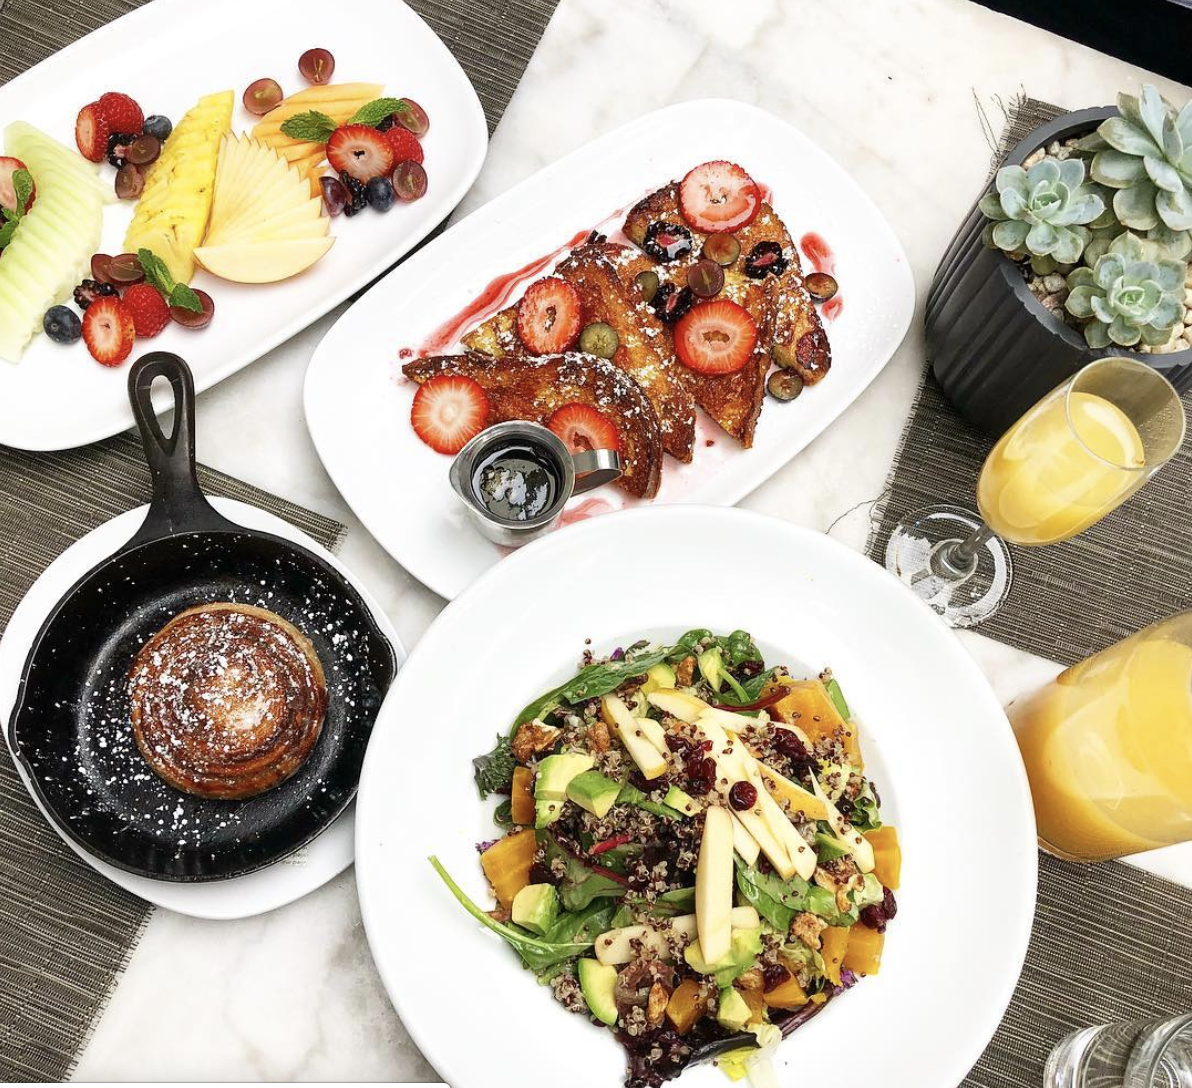 Top 10 Places For A Boozy Brunch In WeHo